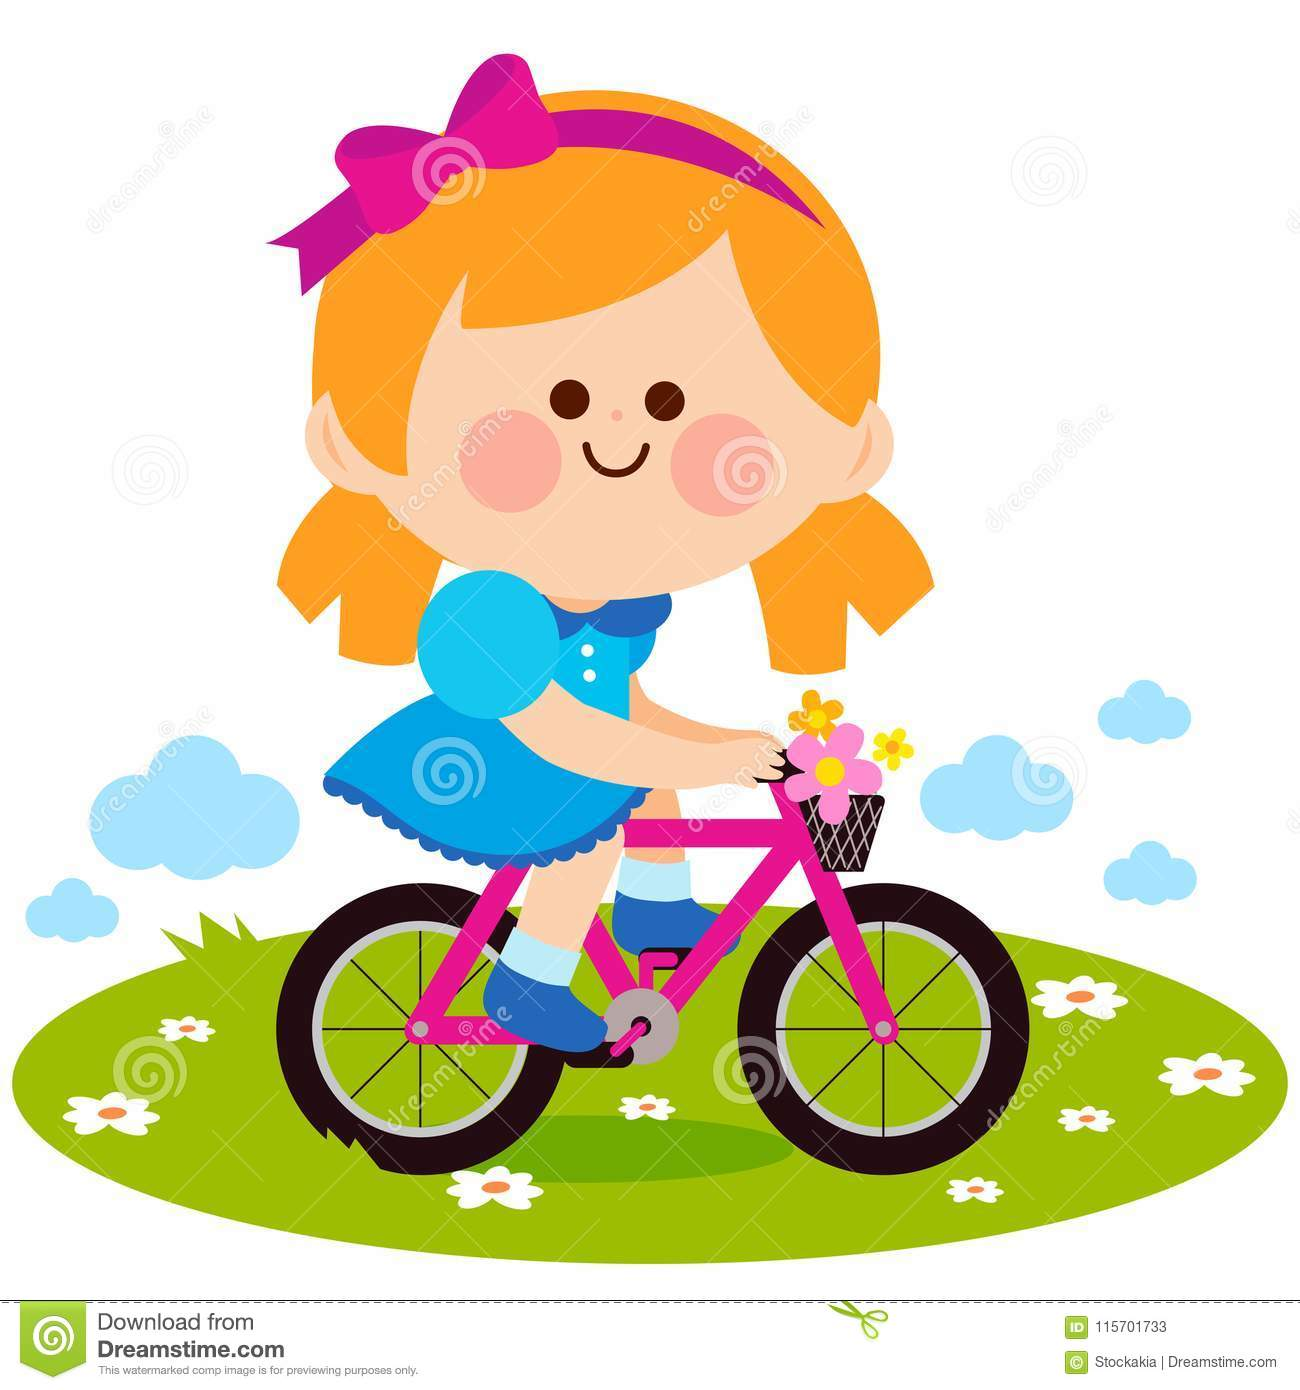 Girl riding a bicycle at the park